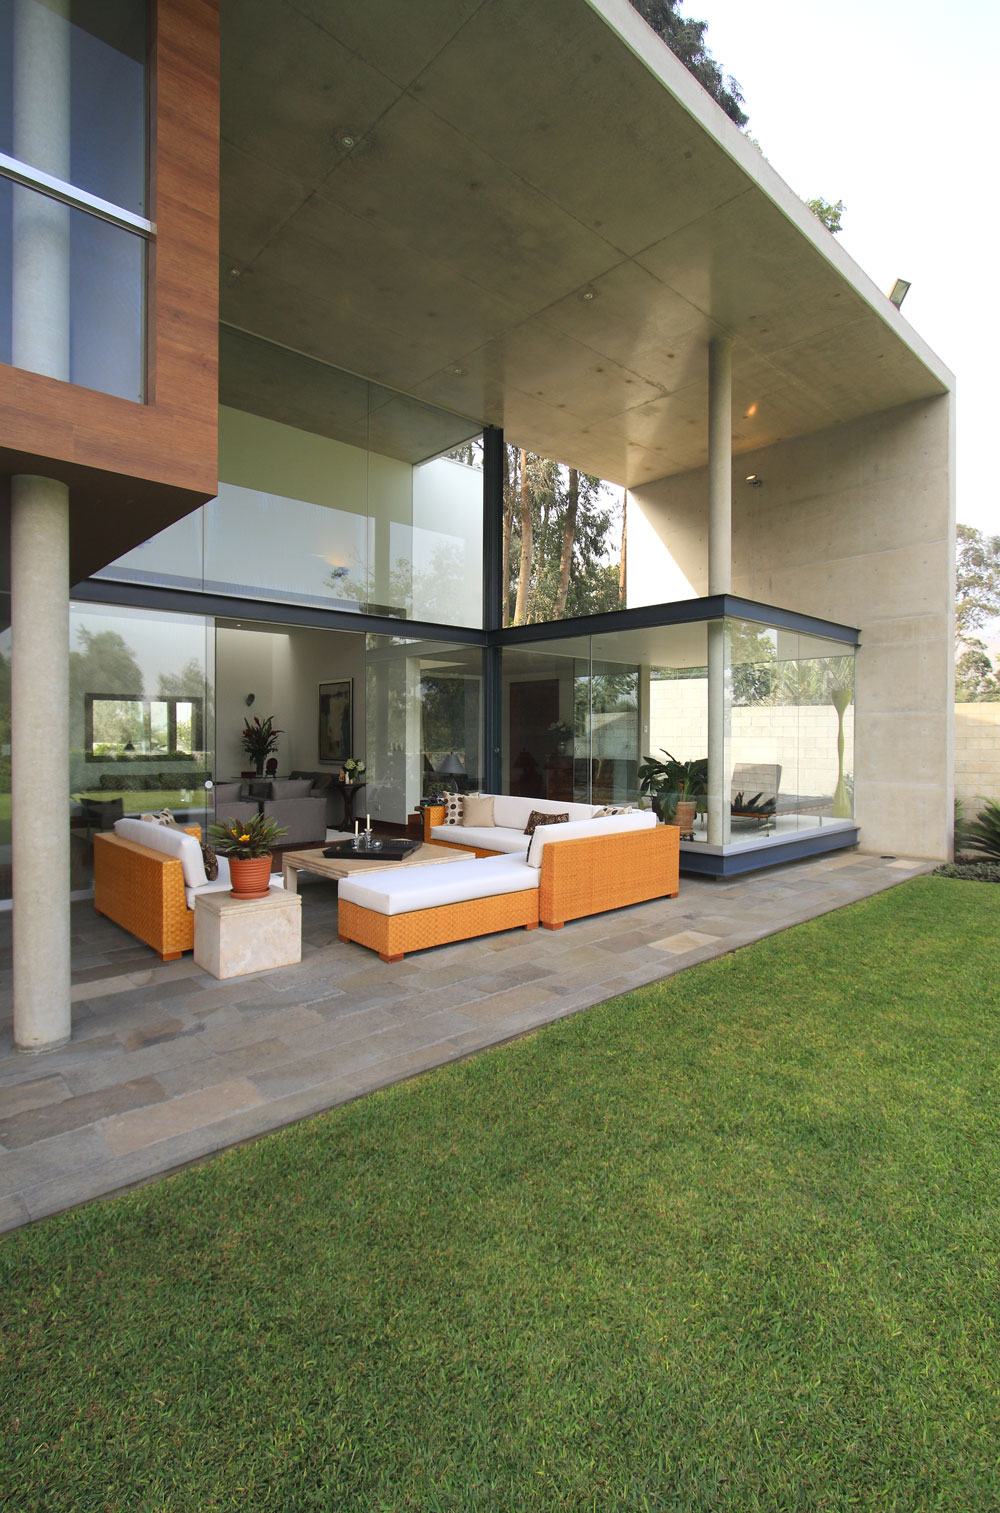 Concrete & Glass Home, Family Home in Lima, Peru